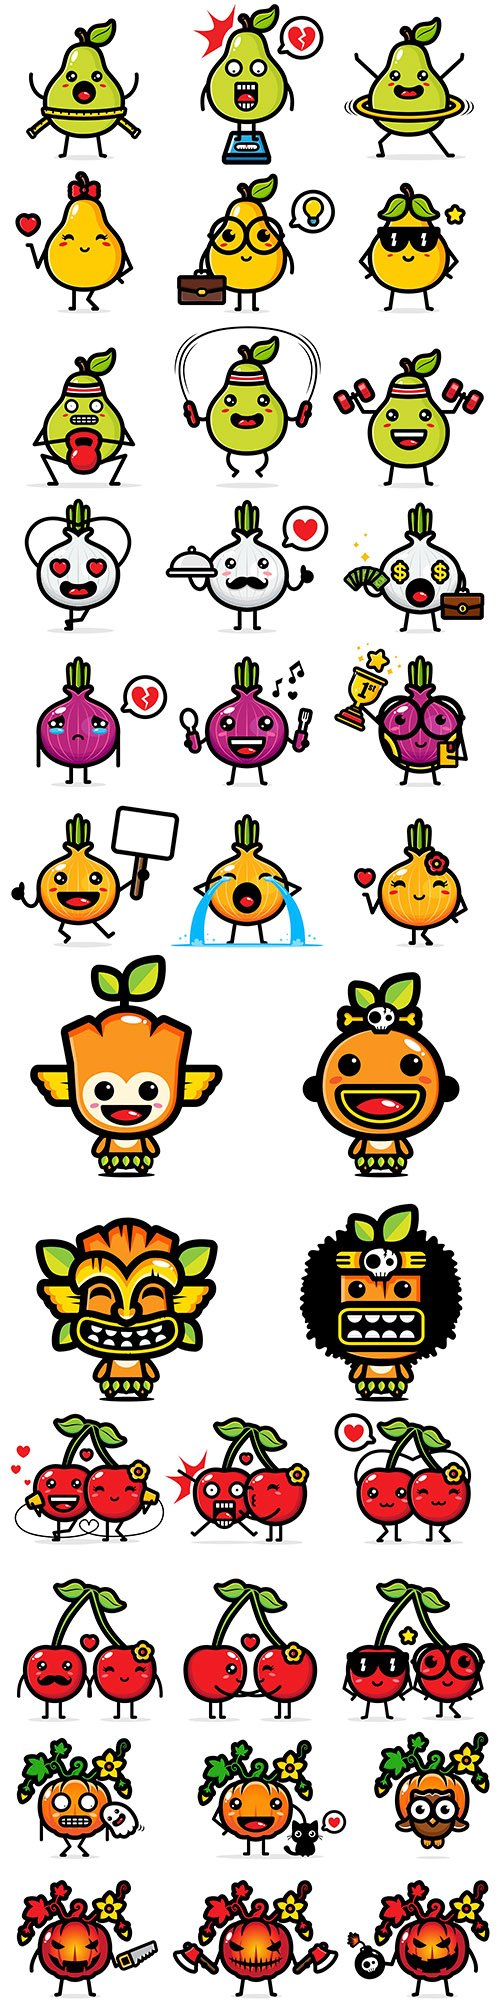 Fruits and vegetables funny cartoon icons